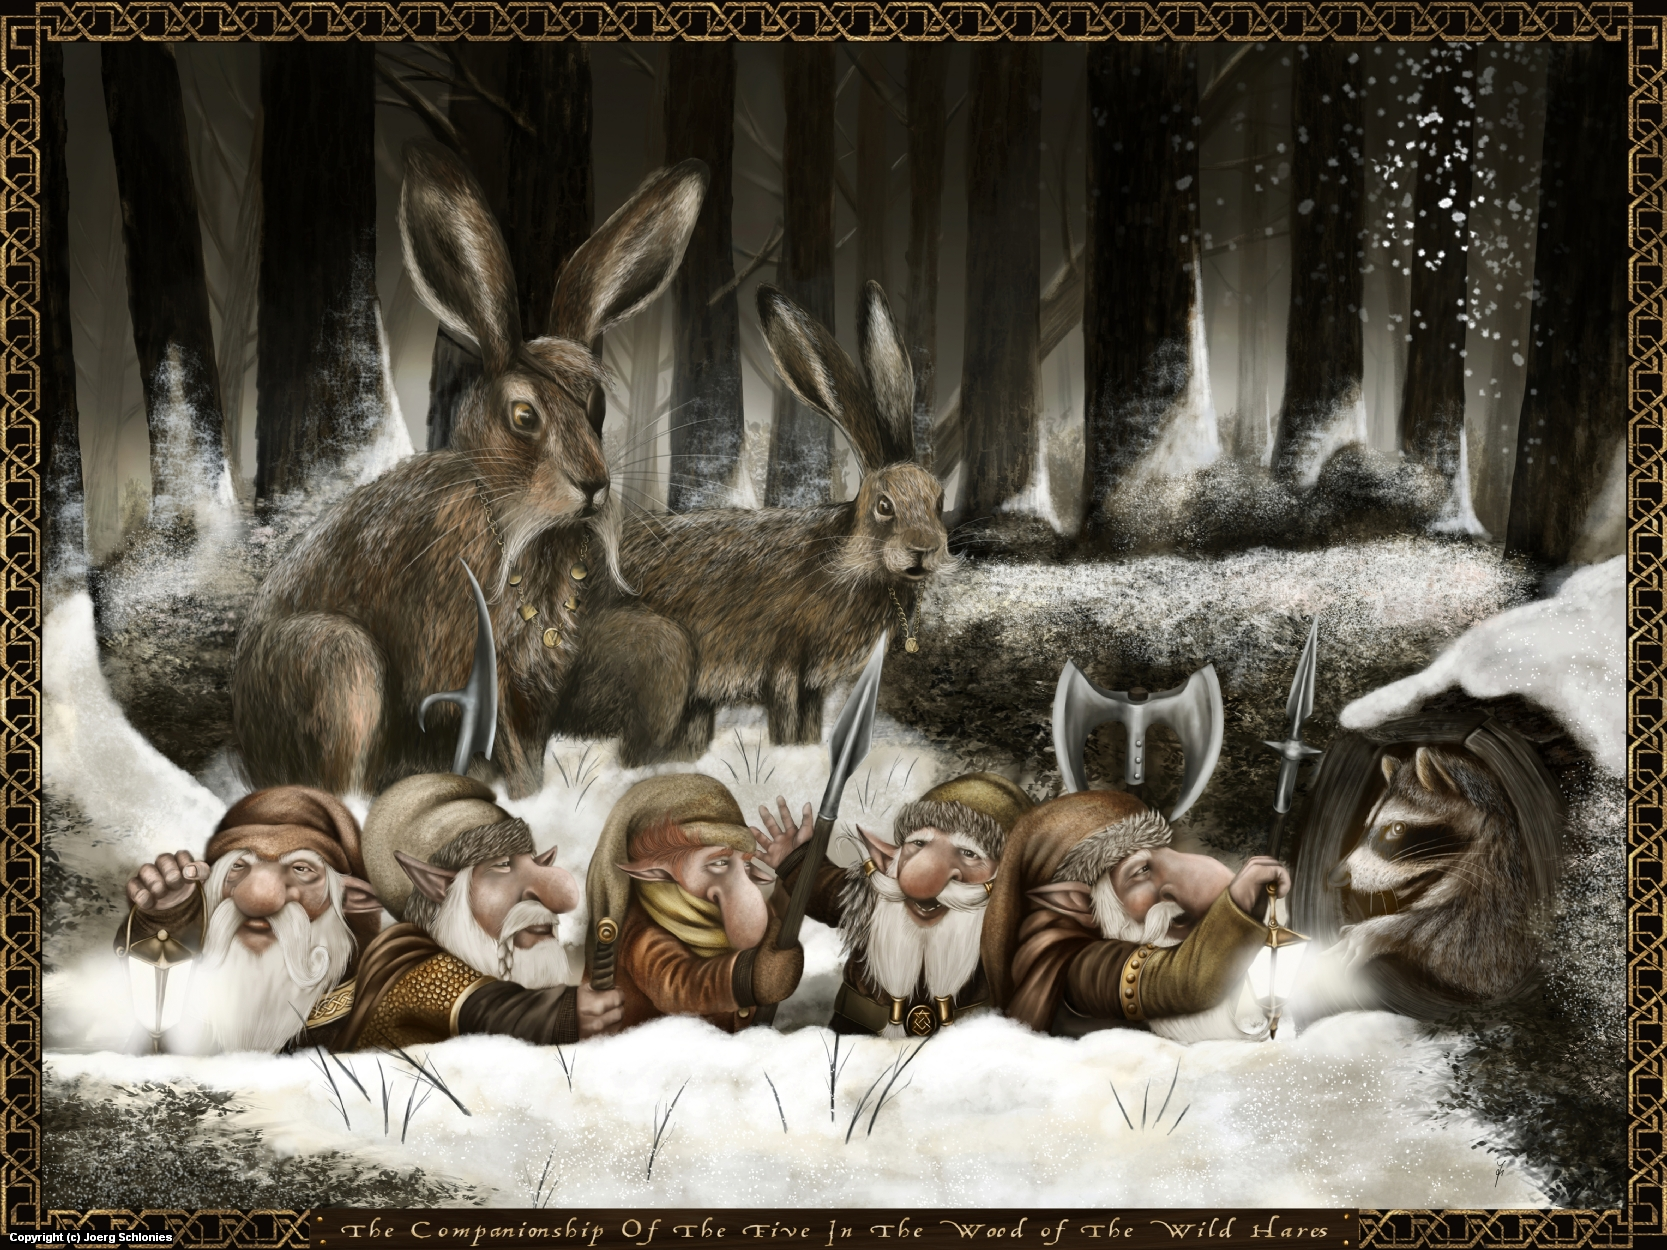 The companionship of the five in the wood of the wild hares Artwork by Joerg Schlonies